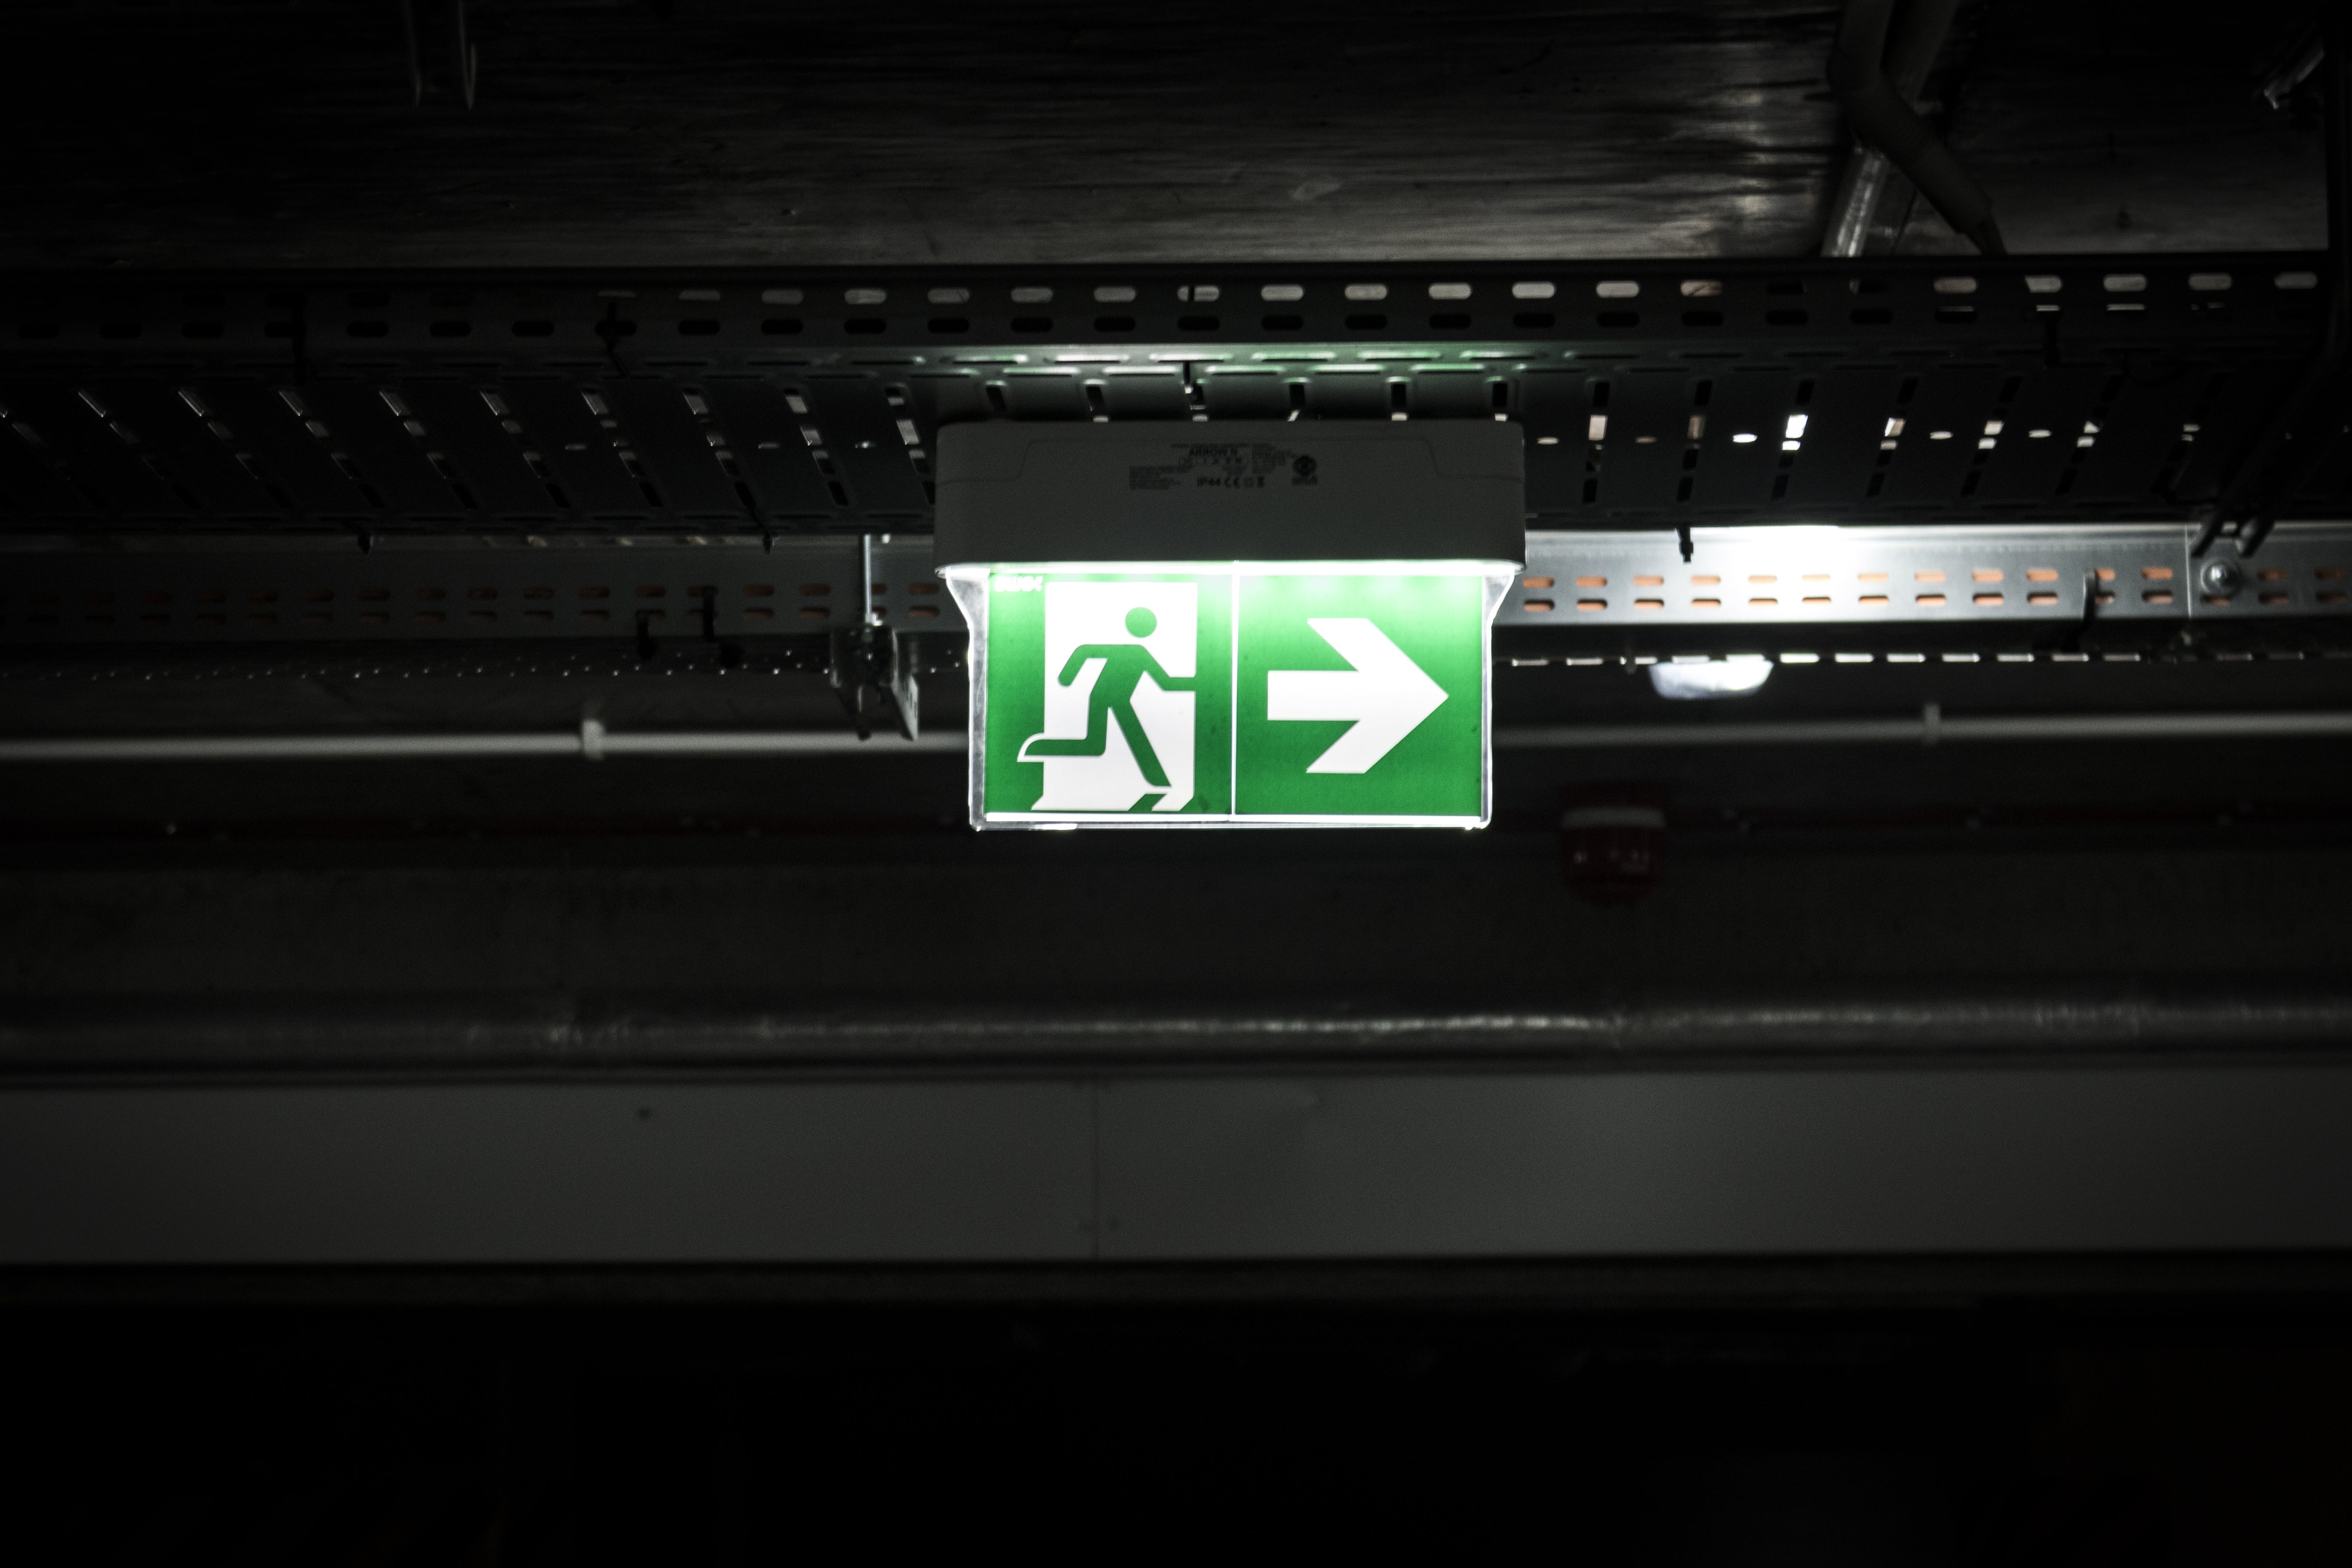 Green and White Exit Way Sign